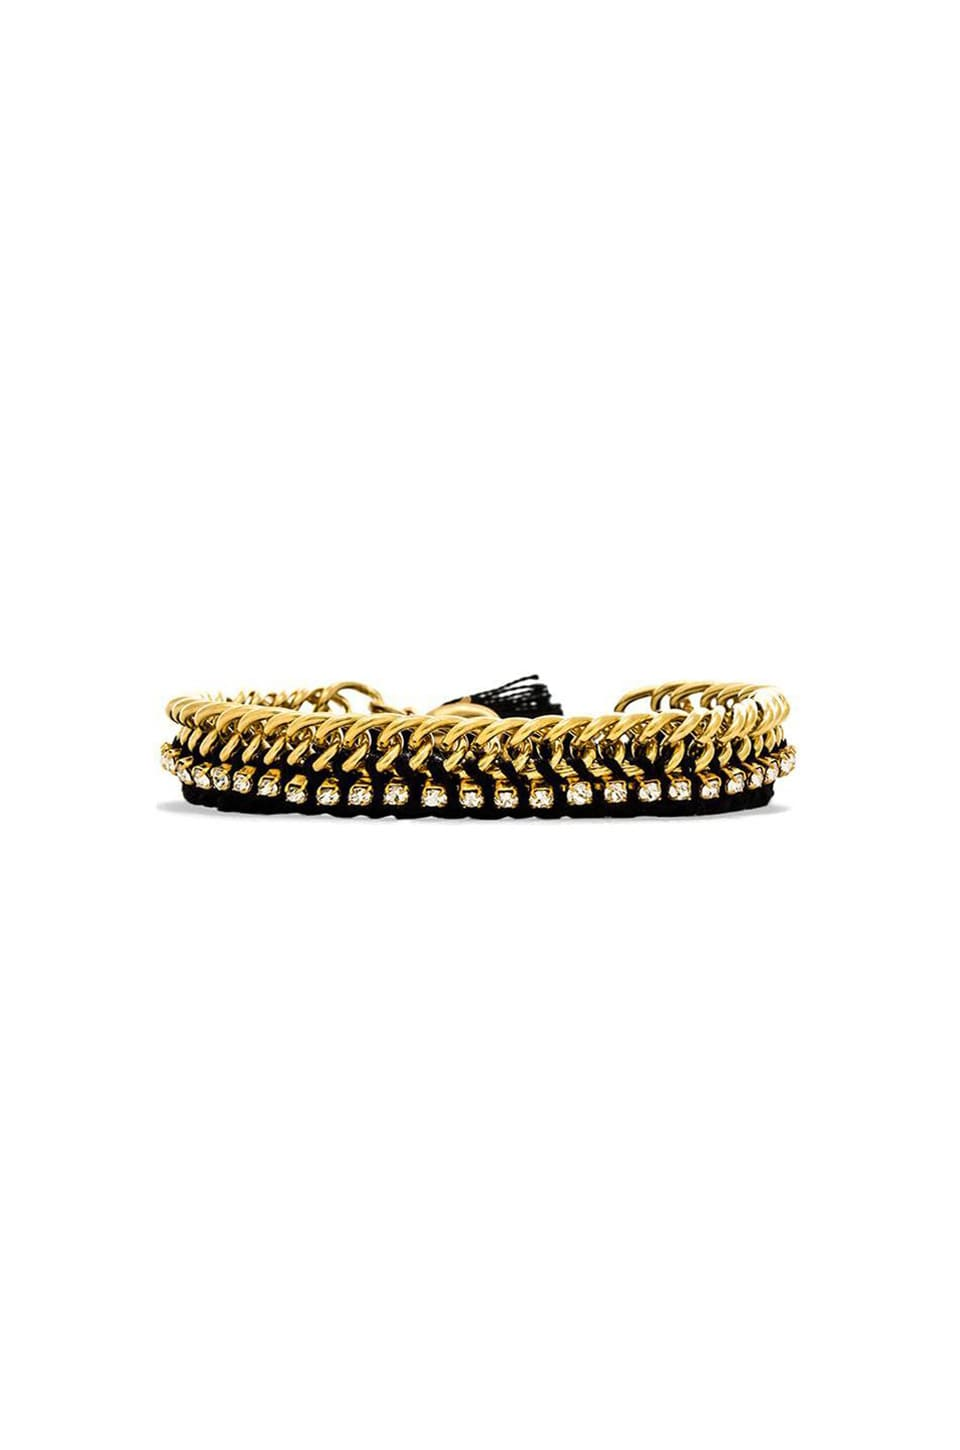 Ettika Chain Bracelet in Black/Gold